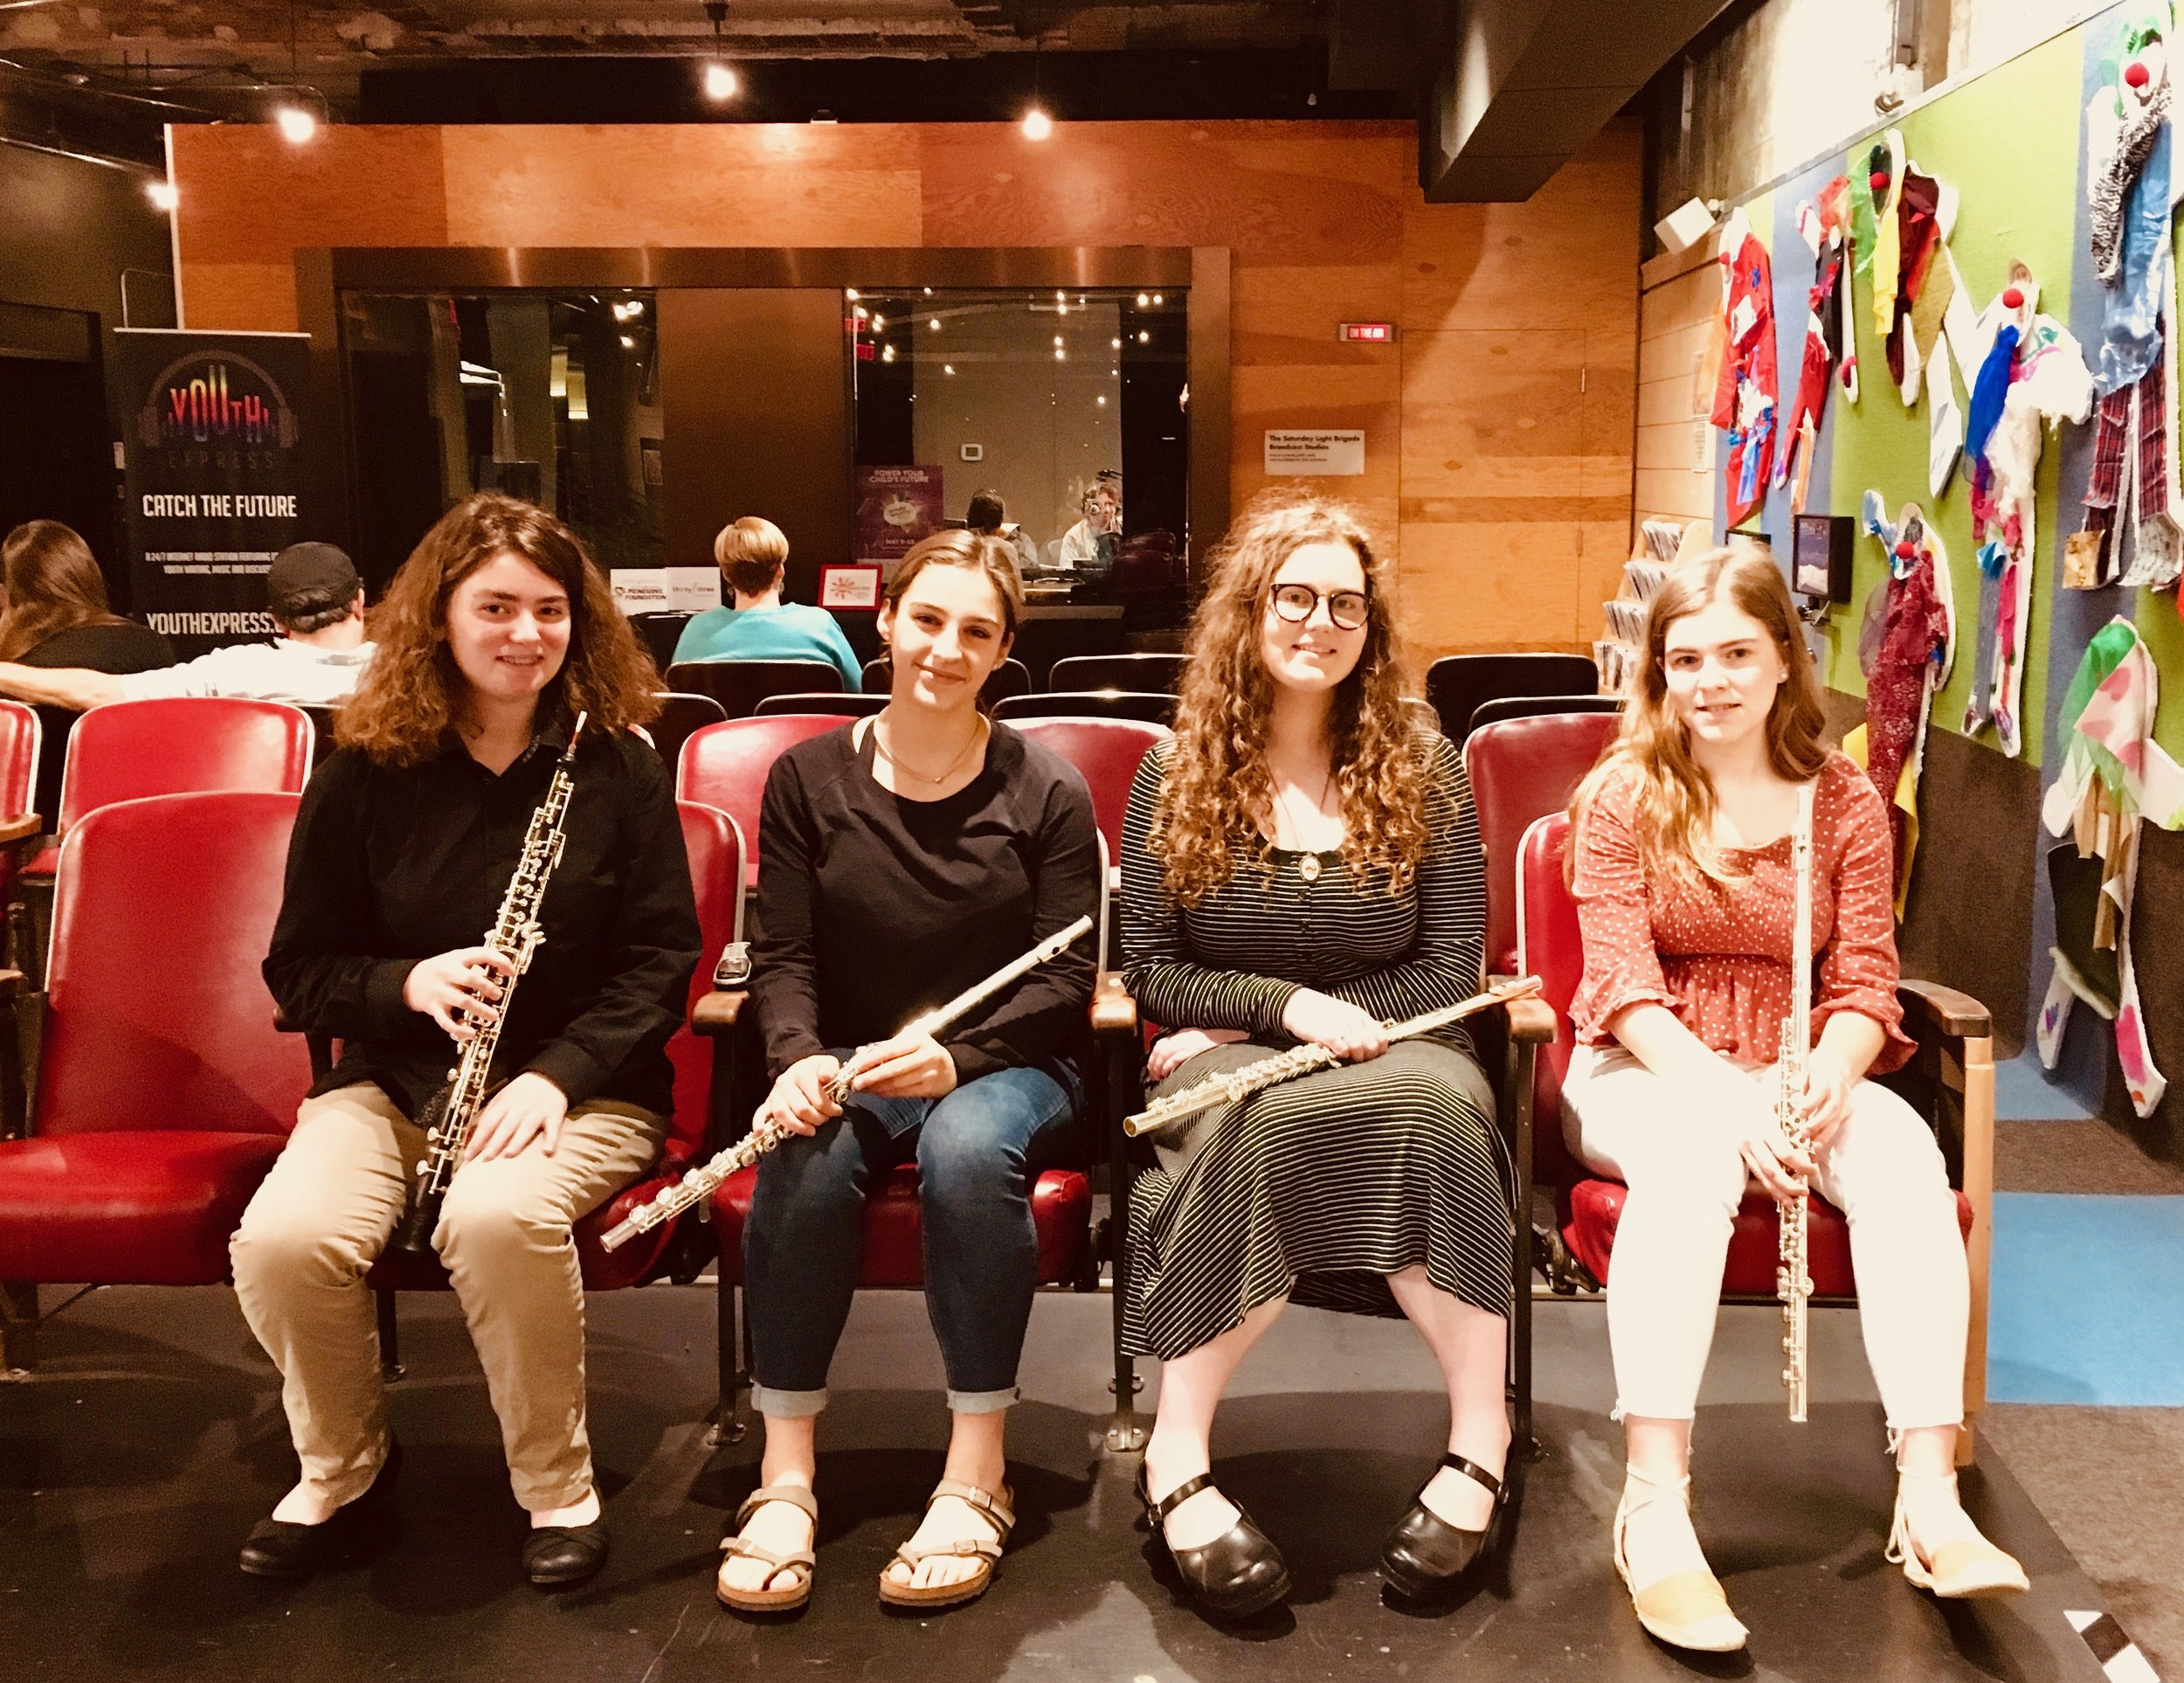 SLB Radio - Saturday, May 11, 2019The Kookaburra Quartet - Becky, Zoe, Emily, and Avery - performed Sousa, Gershwin, and more, on the Saturday Light Brigade radio show at the Children's Museum on the North Side.